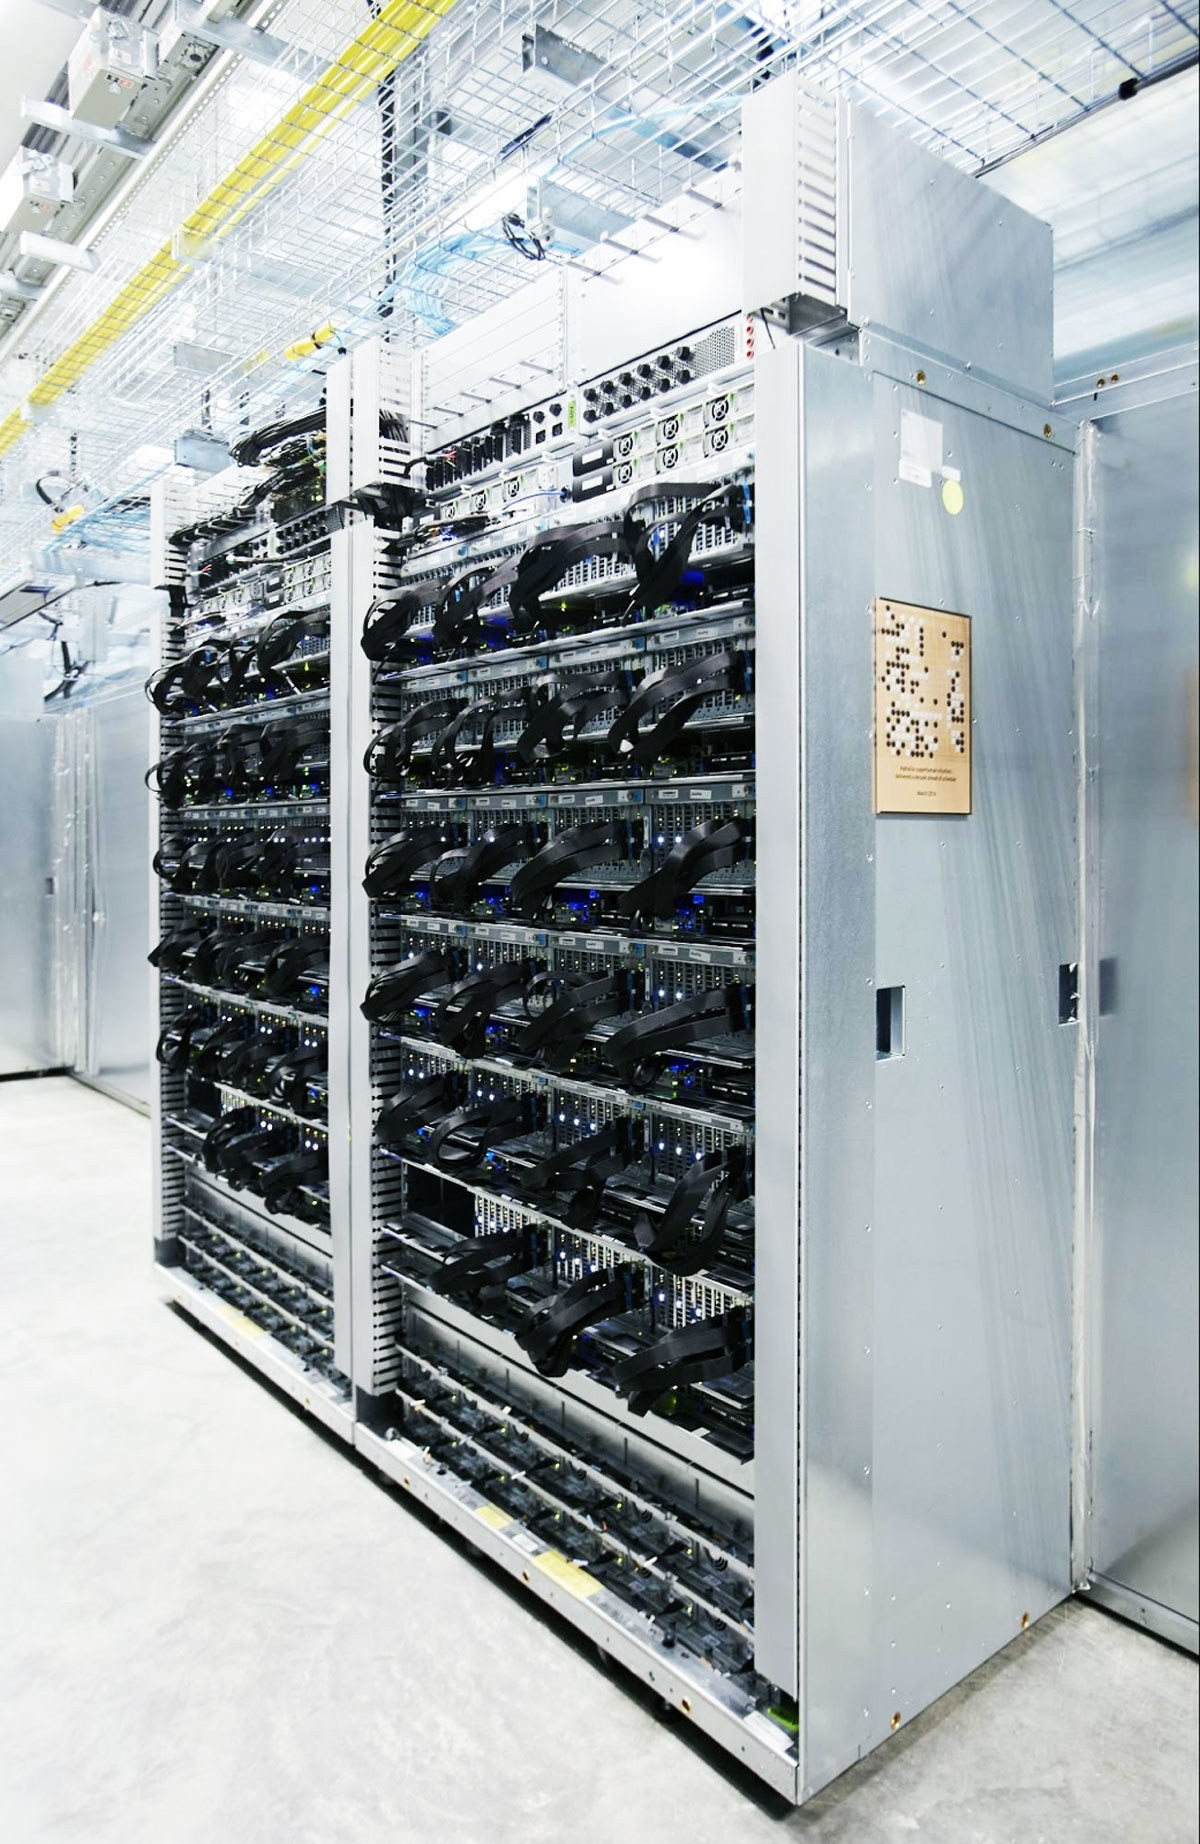 Server racks with TPUs used in the AlphaGo matches with Lee Sedol.